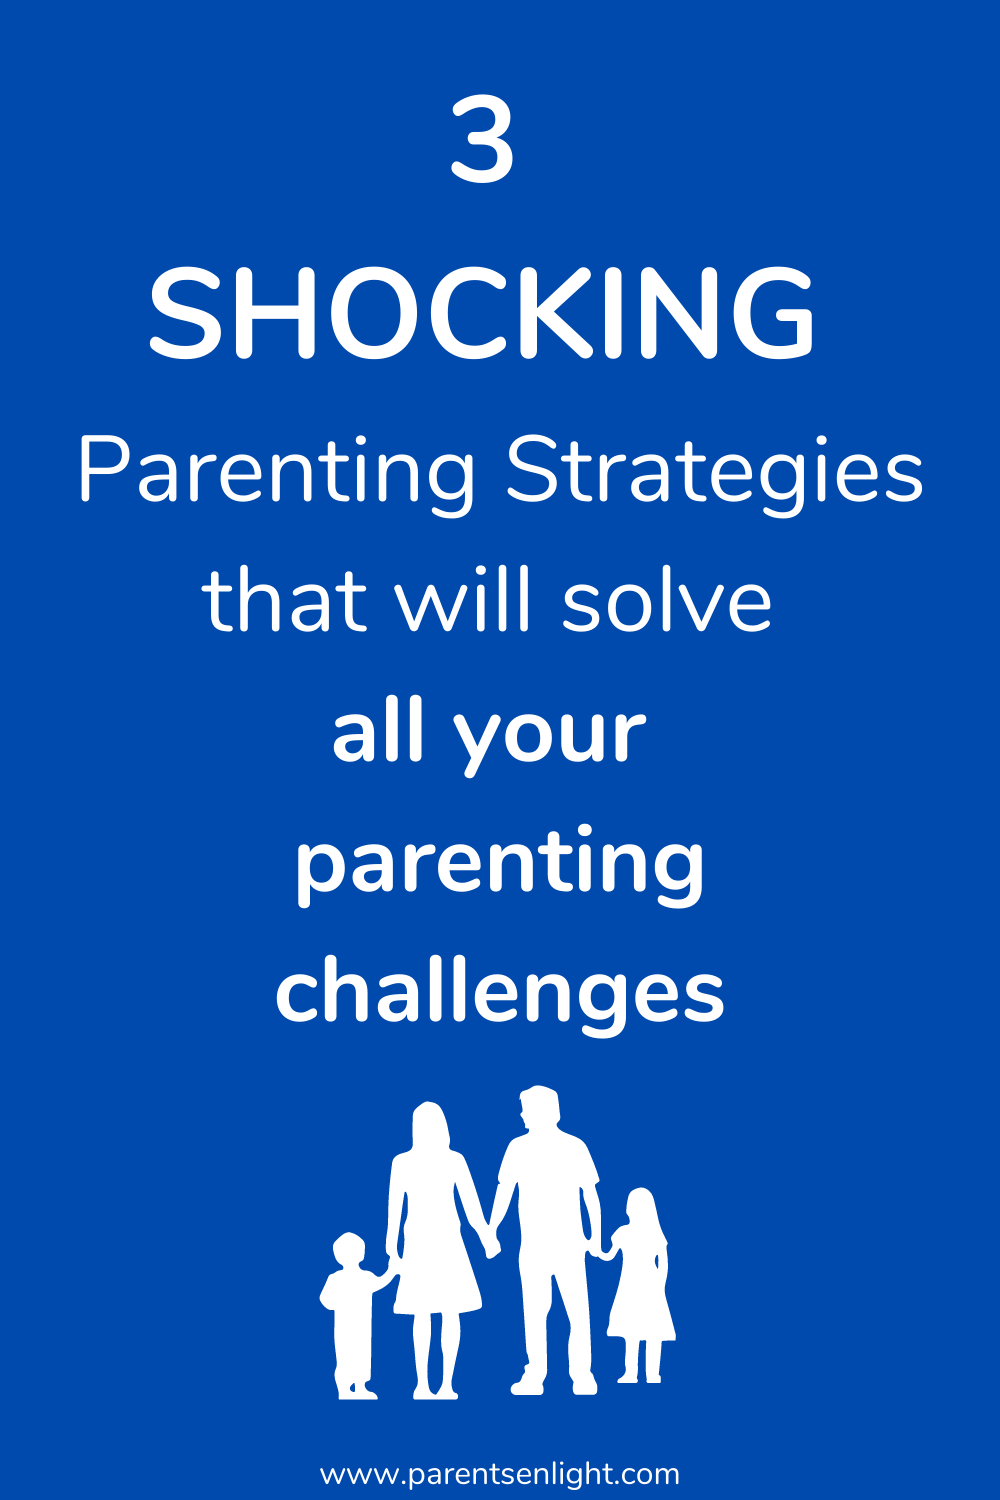 No matter what it is, when you've tried everything but nothing works - it's time to try something else. Fight, power struggles, challenging behaviors - there's a simple method to put all this behind and restart your family life #parentinghelp #mindfulparenting #positiveparenting #childdiscipline #bigfeelings #childhitting #bullying #emotioncoaching